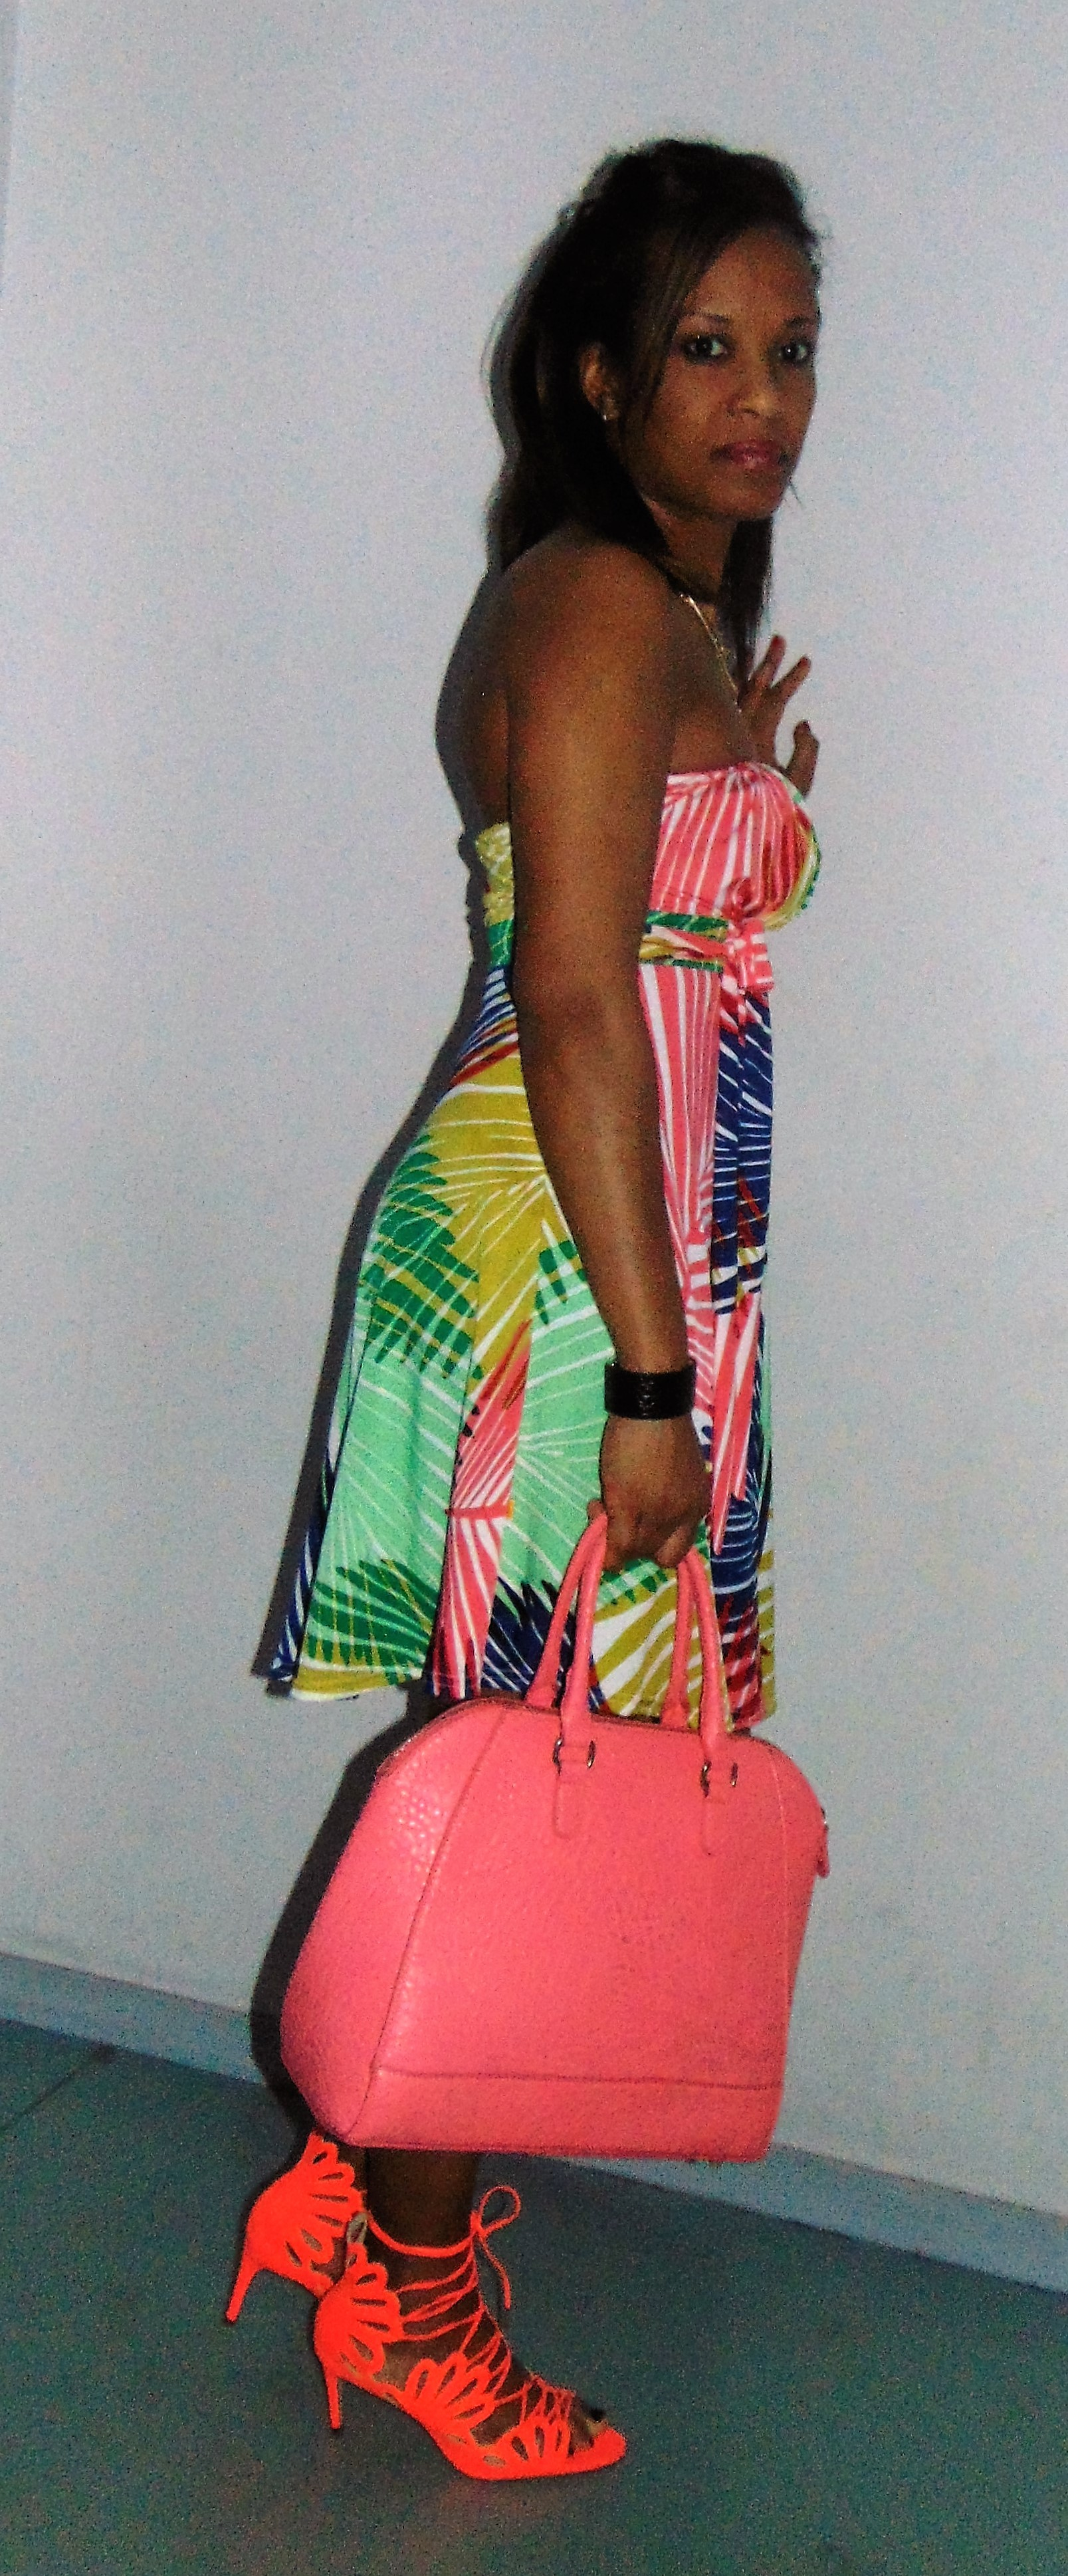 59249209a17 LOOK  Comment je porte ma robe tropicale – TrendysLeMag